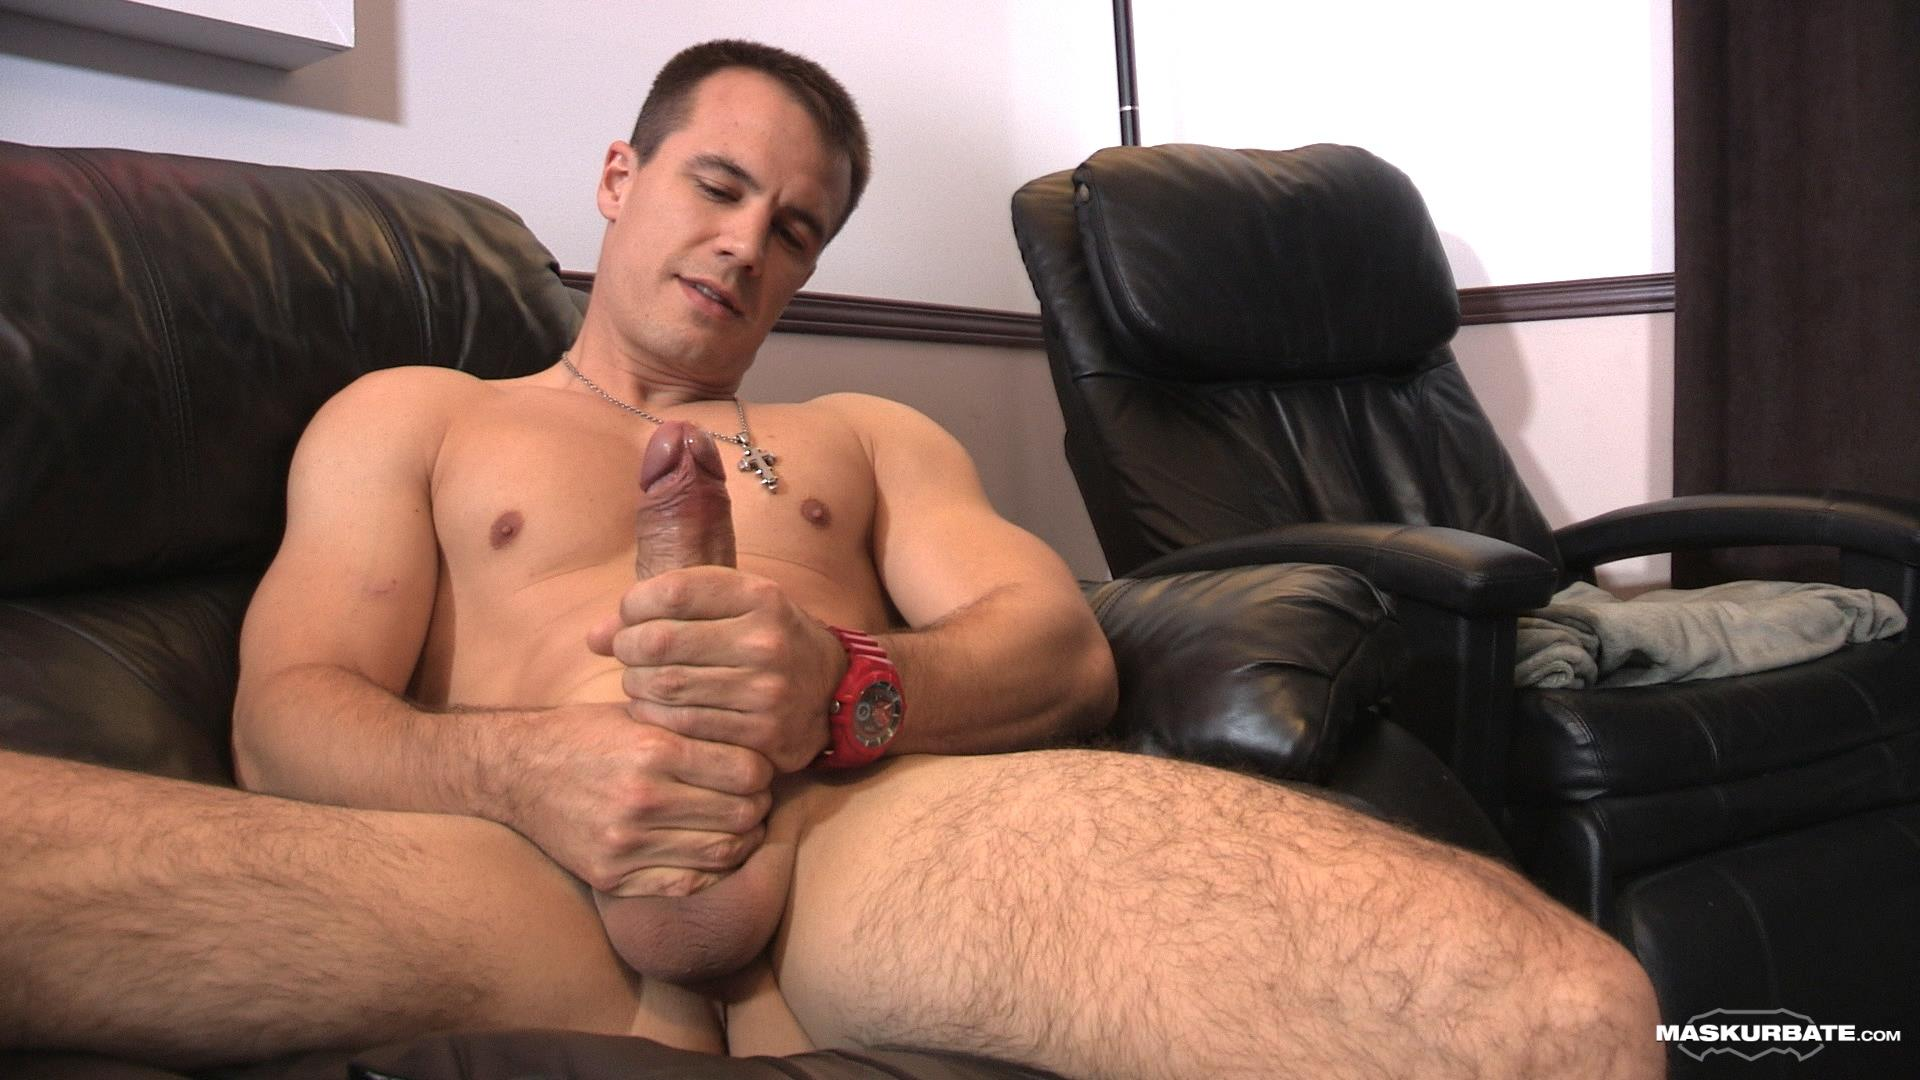 Maskurbate-Ricky-Straight-Guy-Masturbate-Big-Uncut-Cock-Amateur-Gay-Porn-09 Ricky Jerks His Huge Uncut Cock Until Jizz Shoots